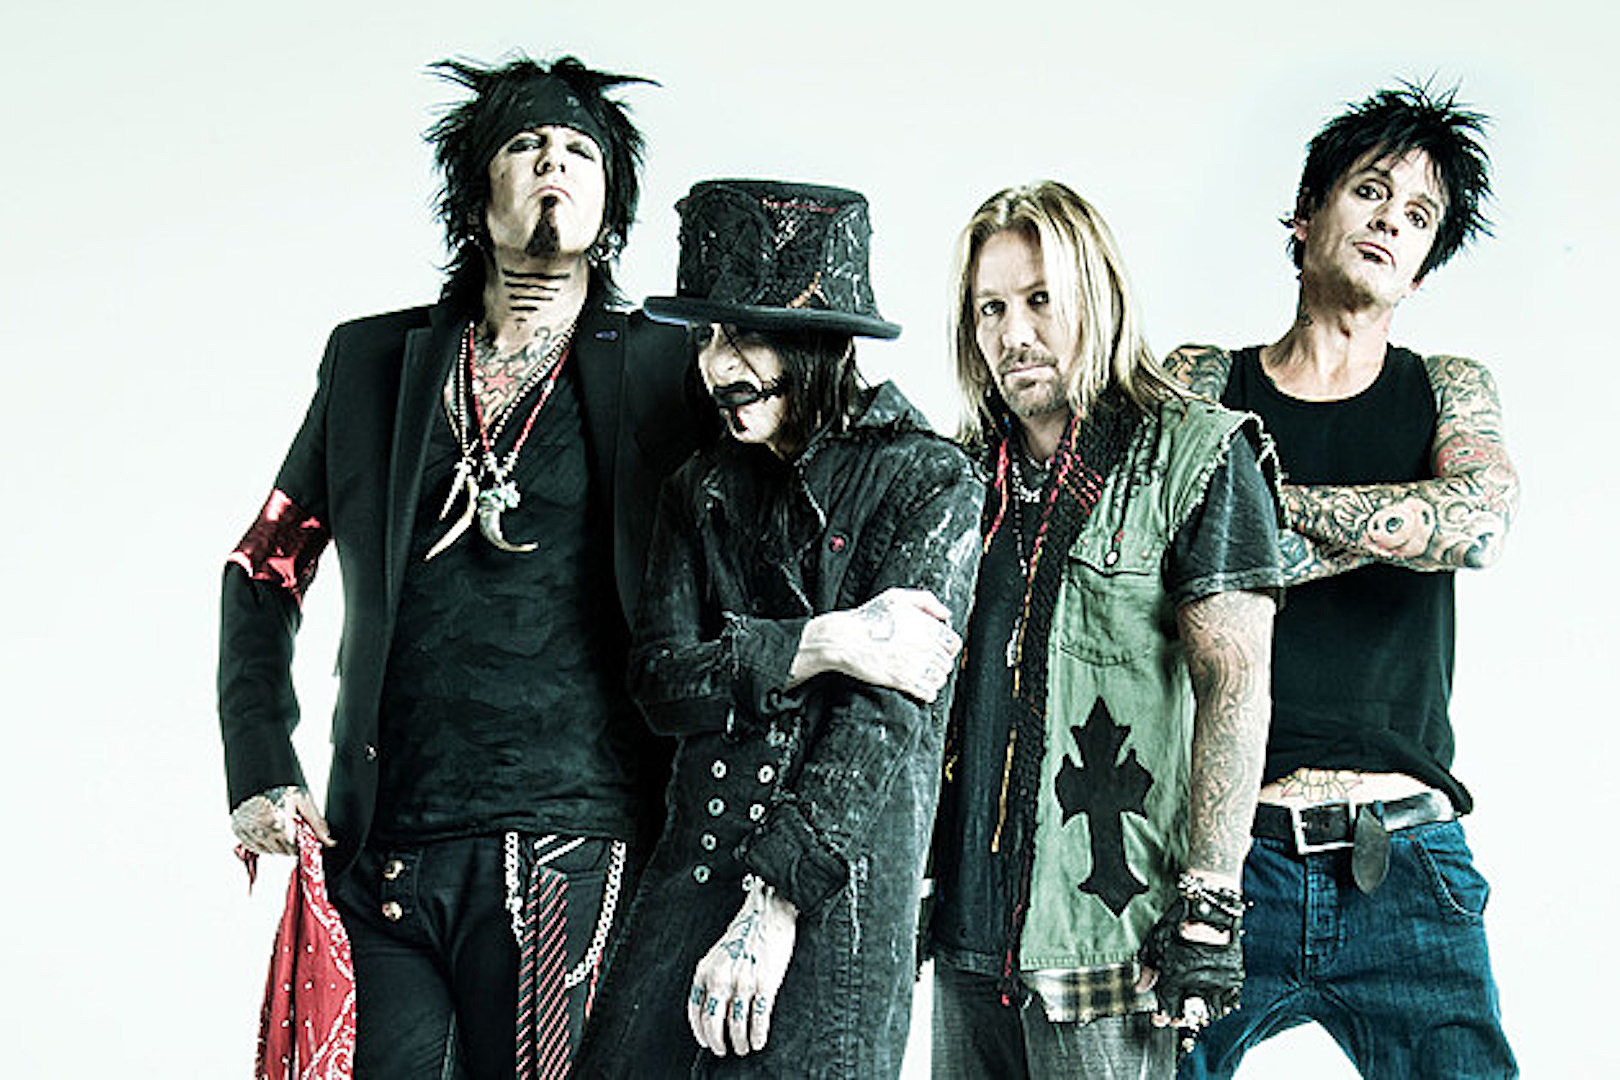 Motley Crue Release Two More New Songs From 'The Dirt' Soundtrack